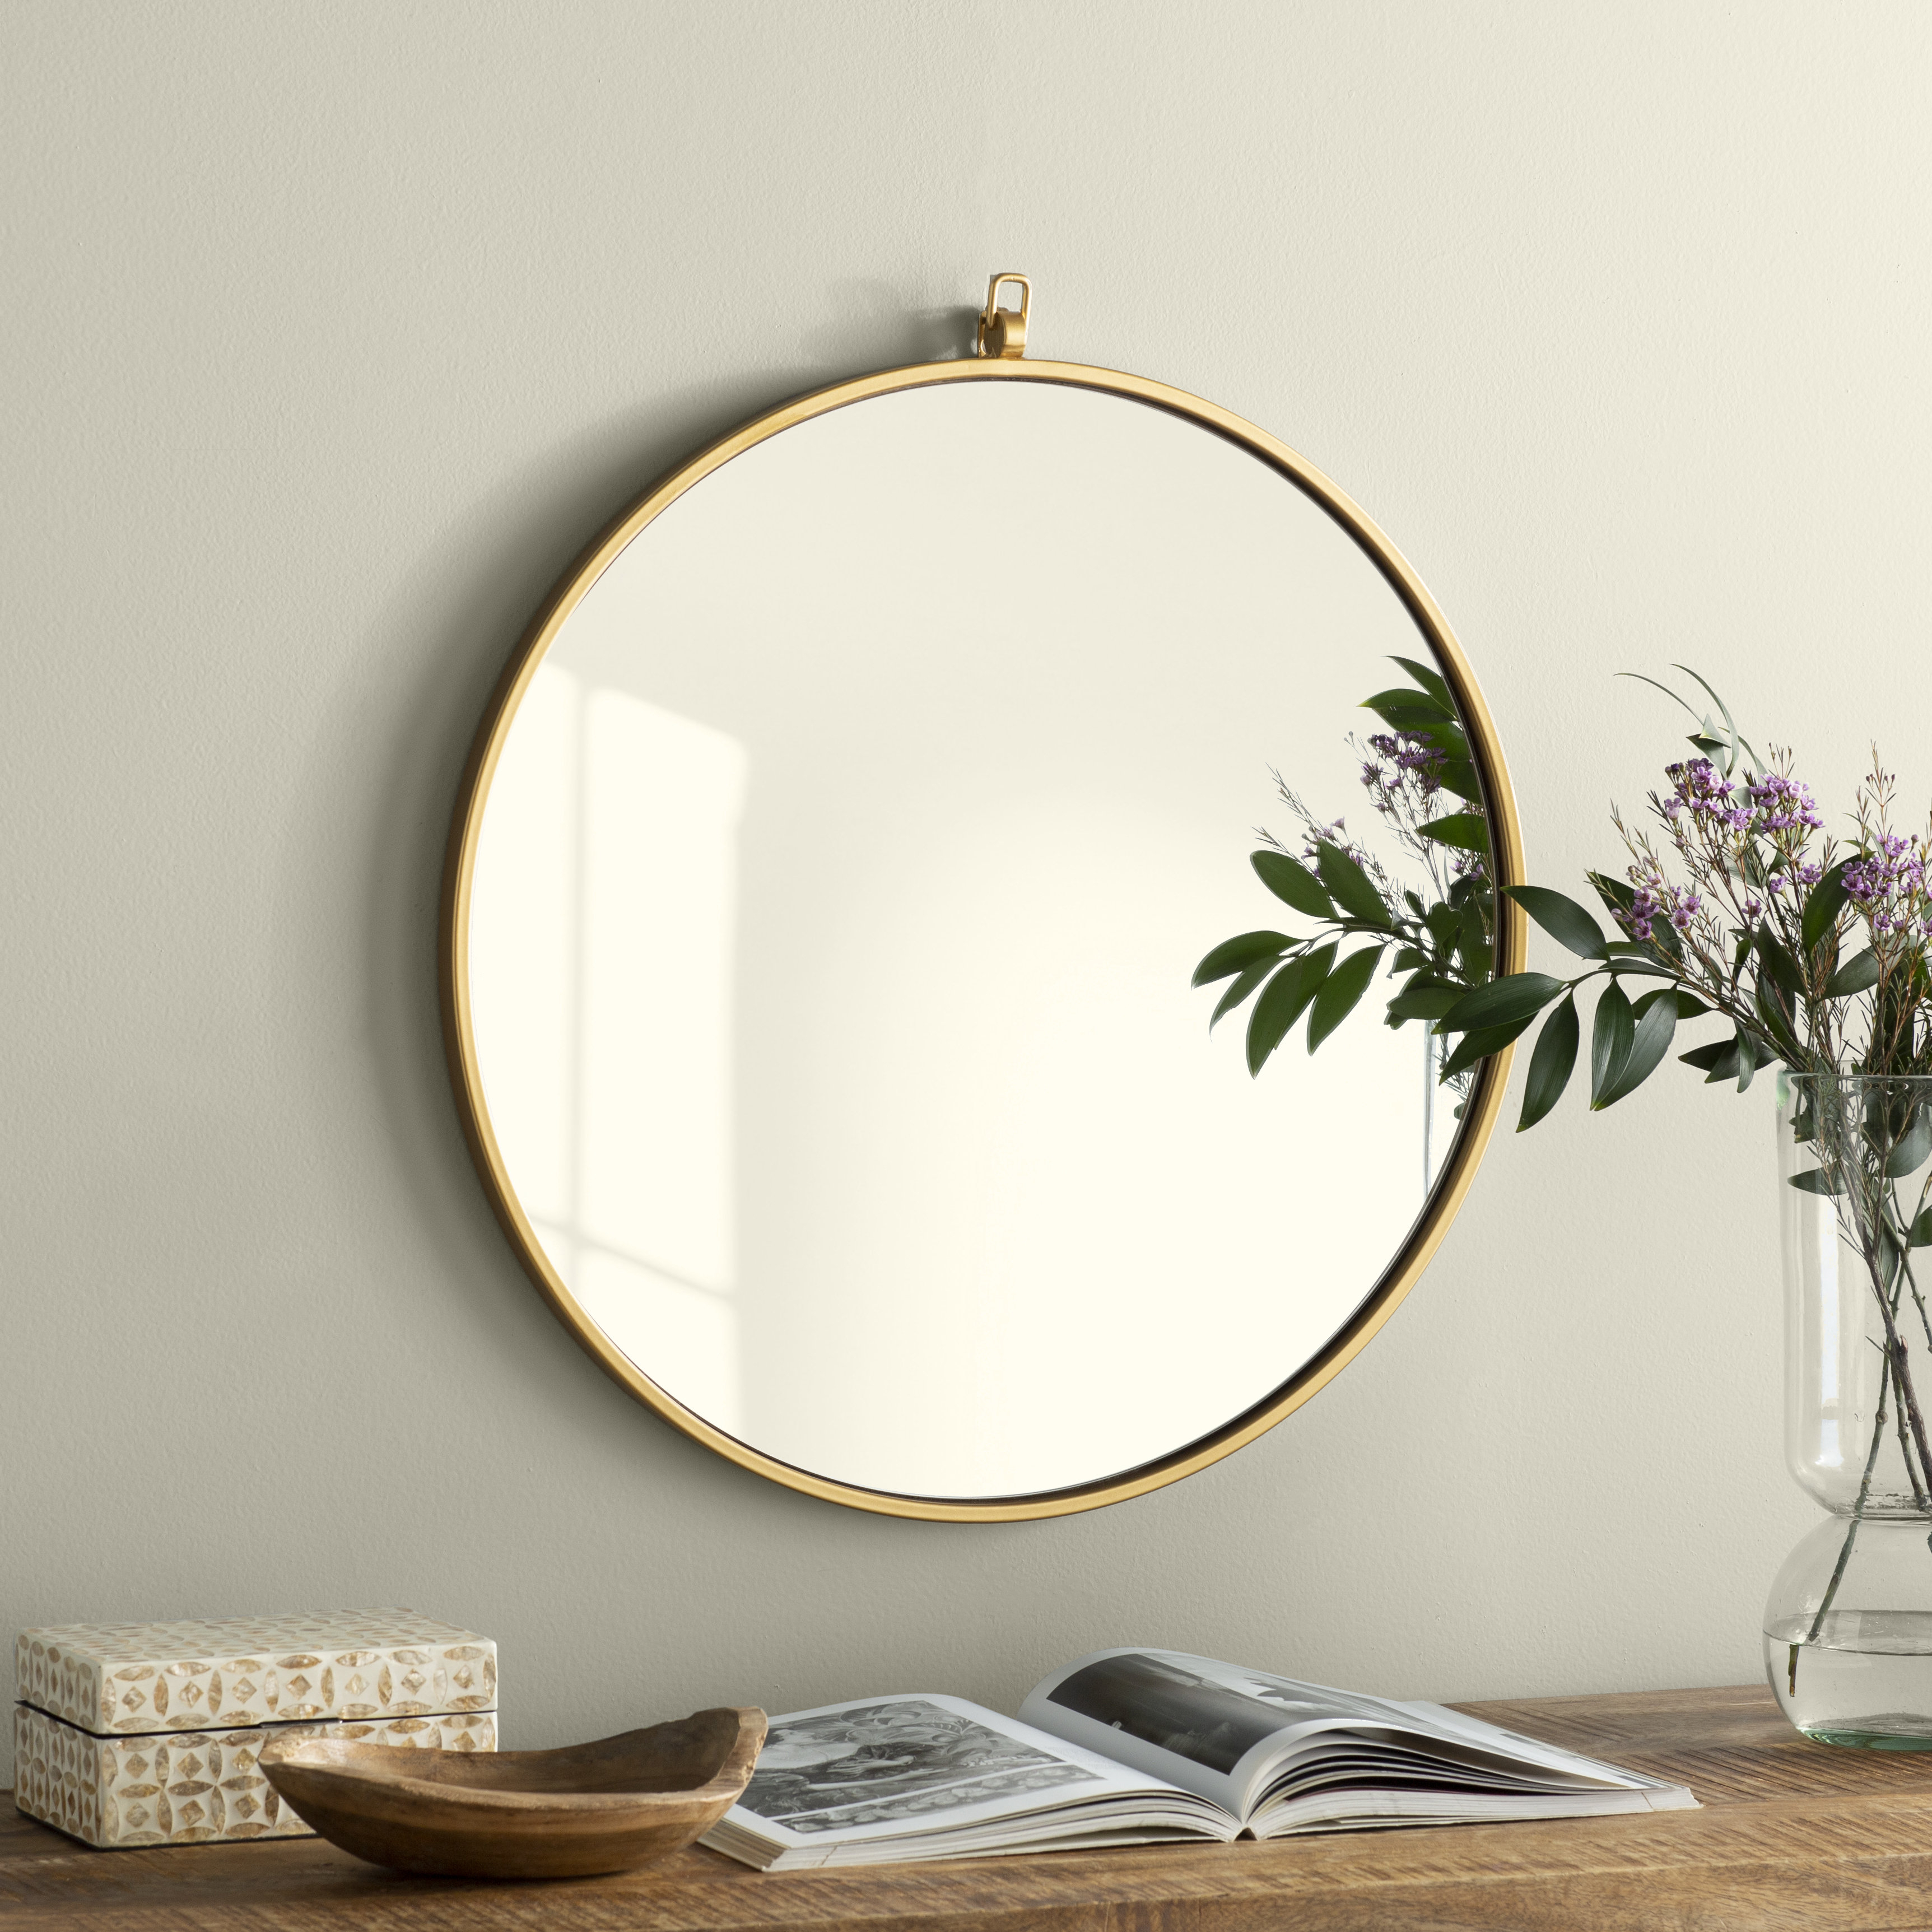 Joss & Main Essentials Accent Mirror Intended For Swagger Accent Wall Mirrors (View 8 of 20)